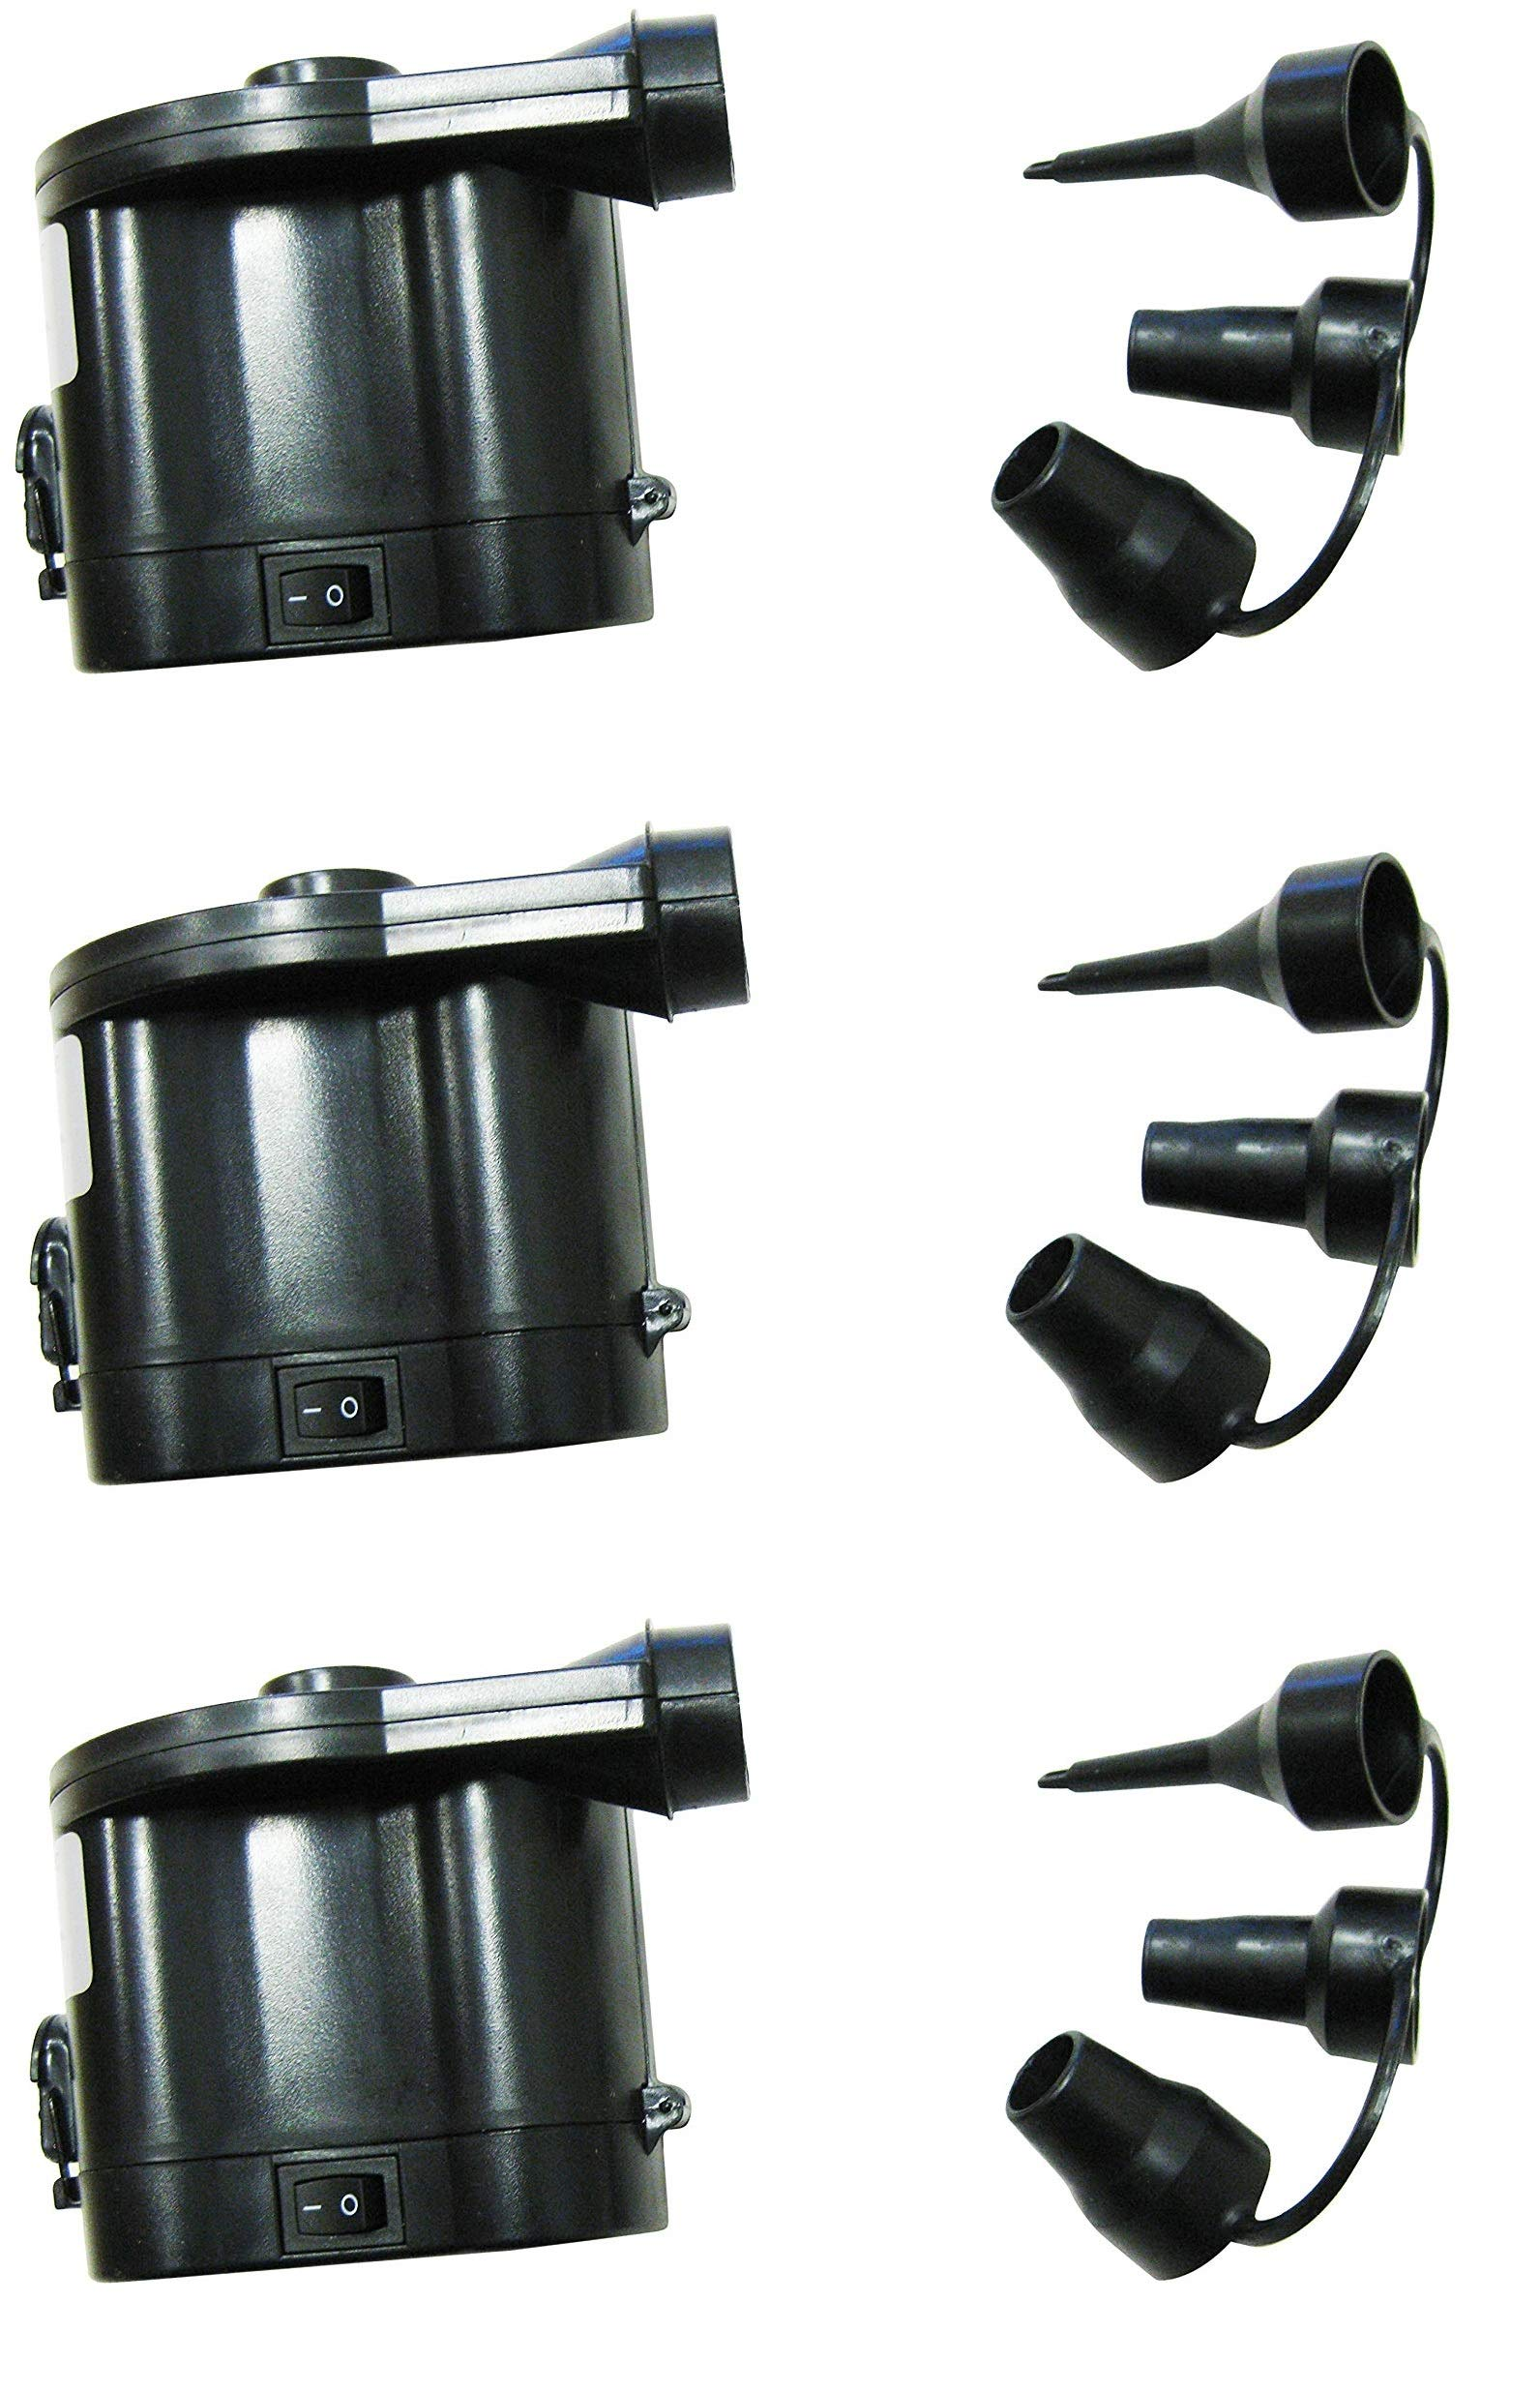 Zaltana DC air Pump opreated by 4''D Cell Batteries (Battery Sold Separately) APD (Thrее Расk)